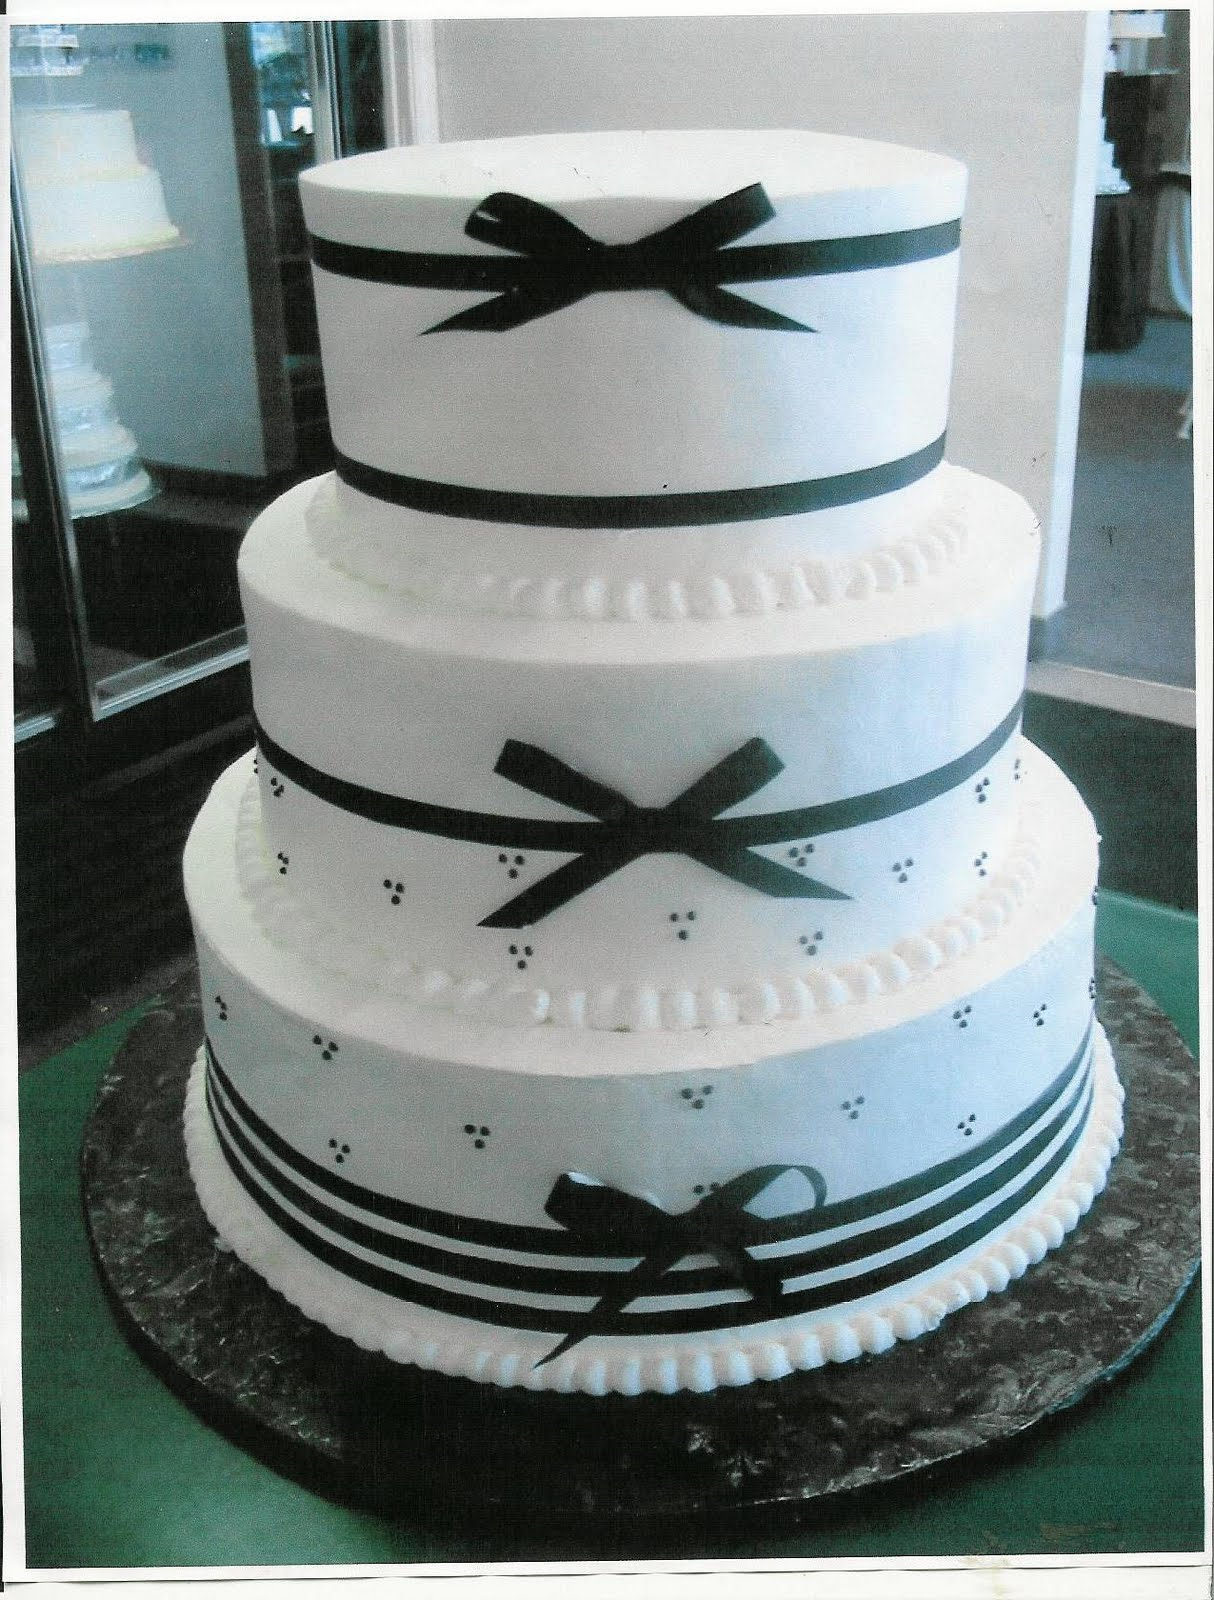 Cake Decorating Ribbon Ideas : Beautifull Wedding Cakes With Ribbon Decorate